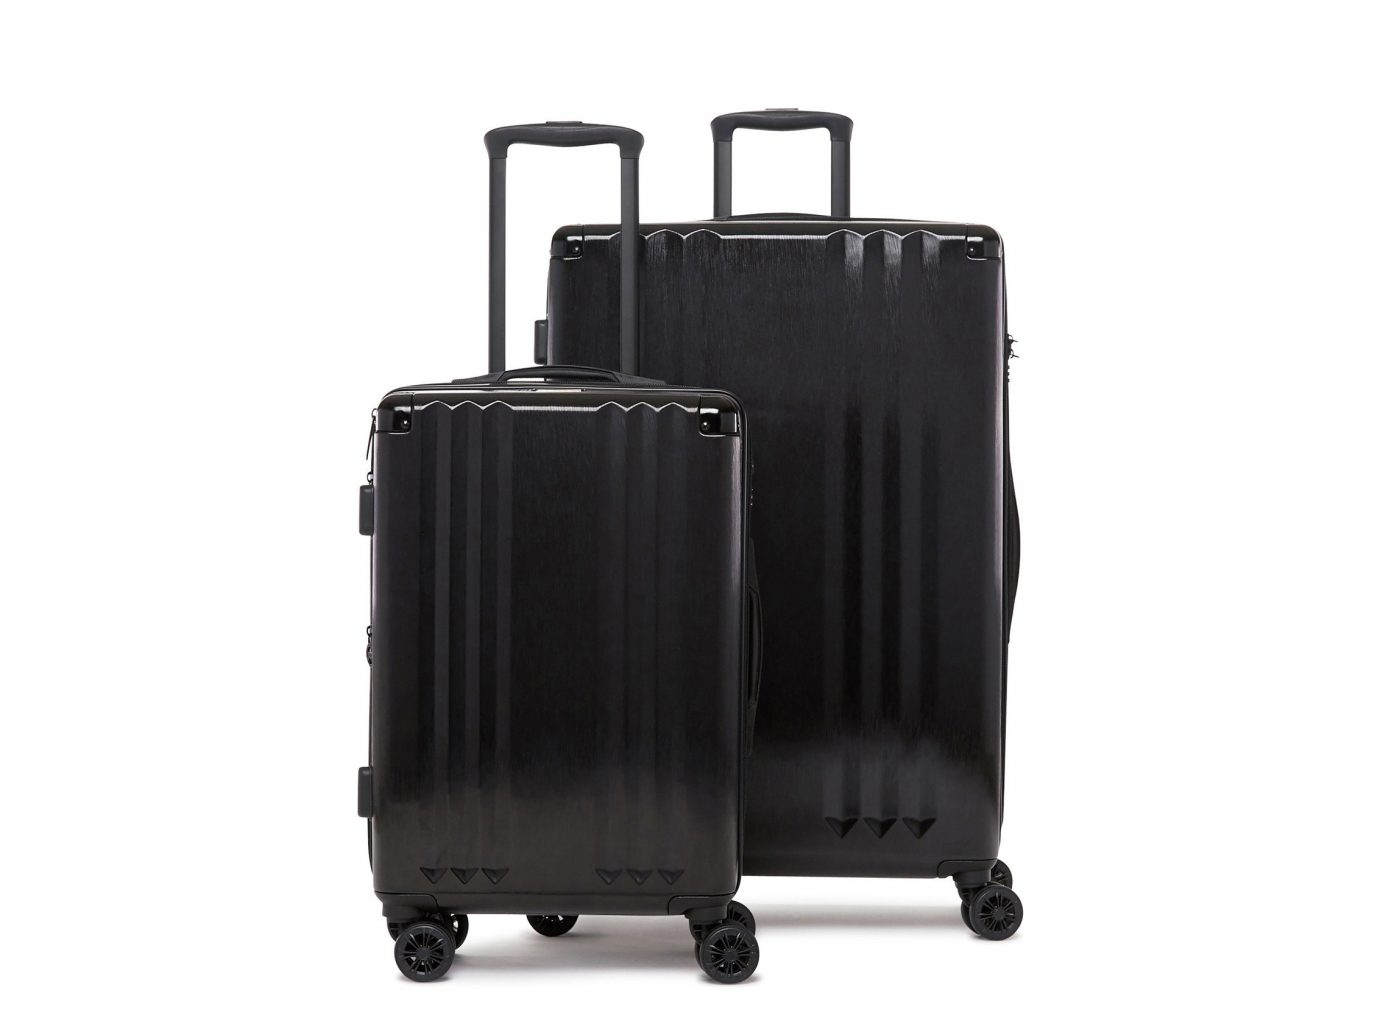 Packing Tips Style + Design Travel Shop luggage suitcase product piece product design hand luggage luggage & bags accessory case, CALPAK Ambeur Luggage Set